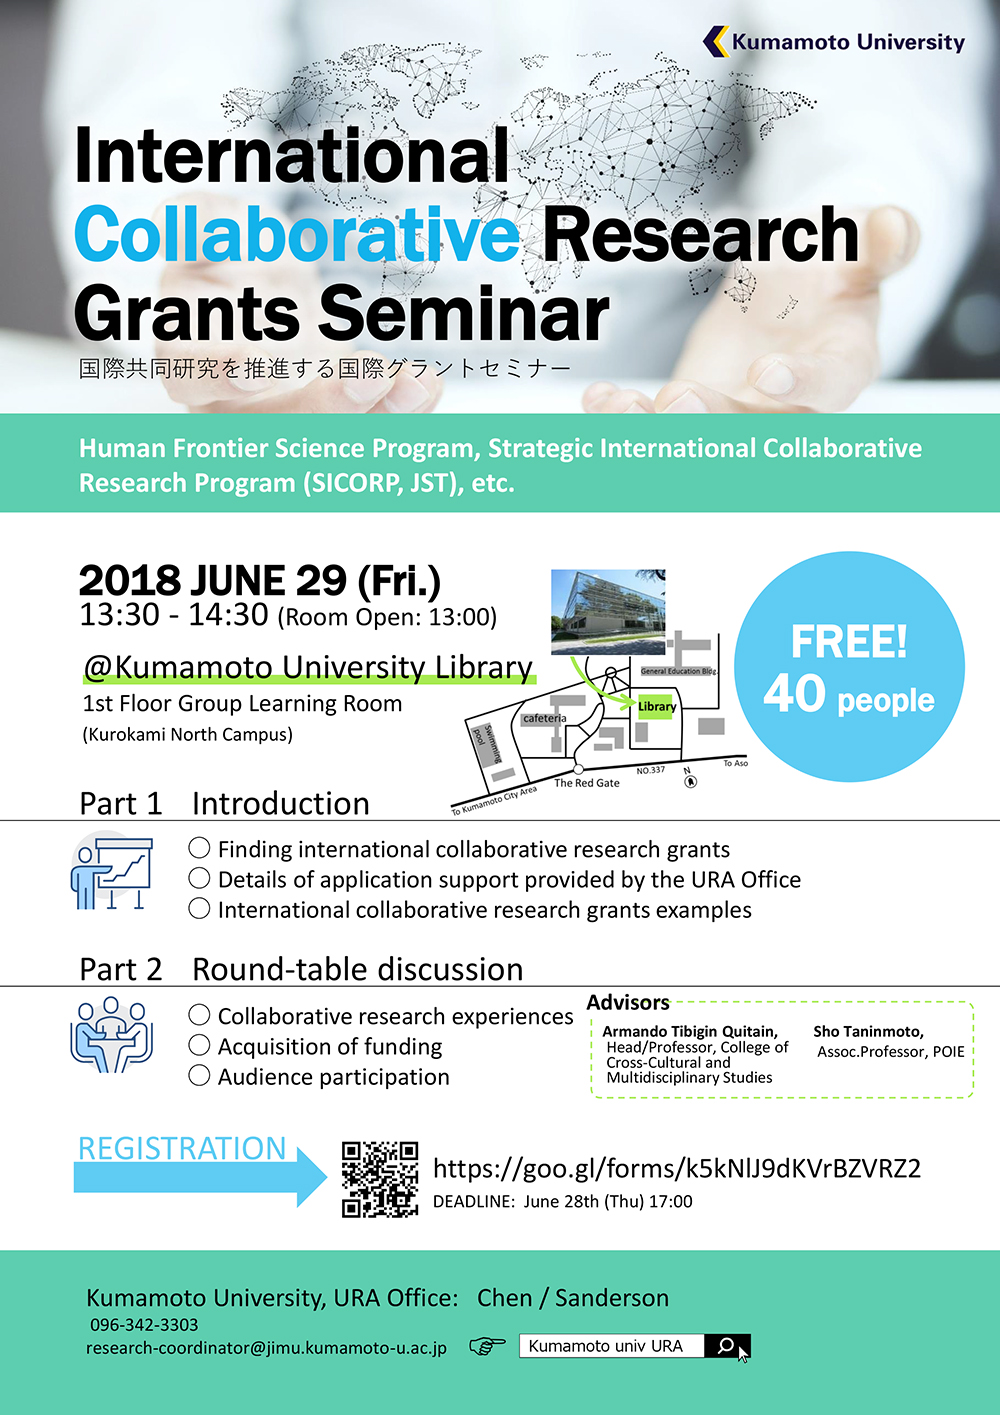 Intl. Collaborative Research Grants Seminar